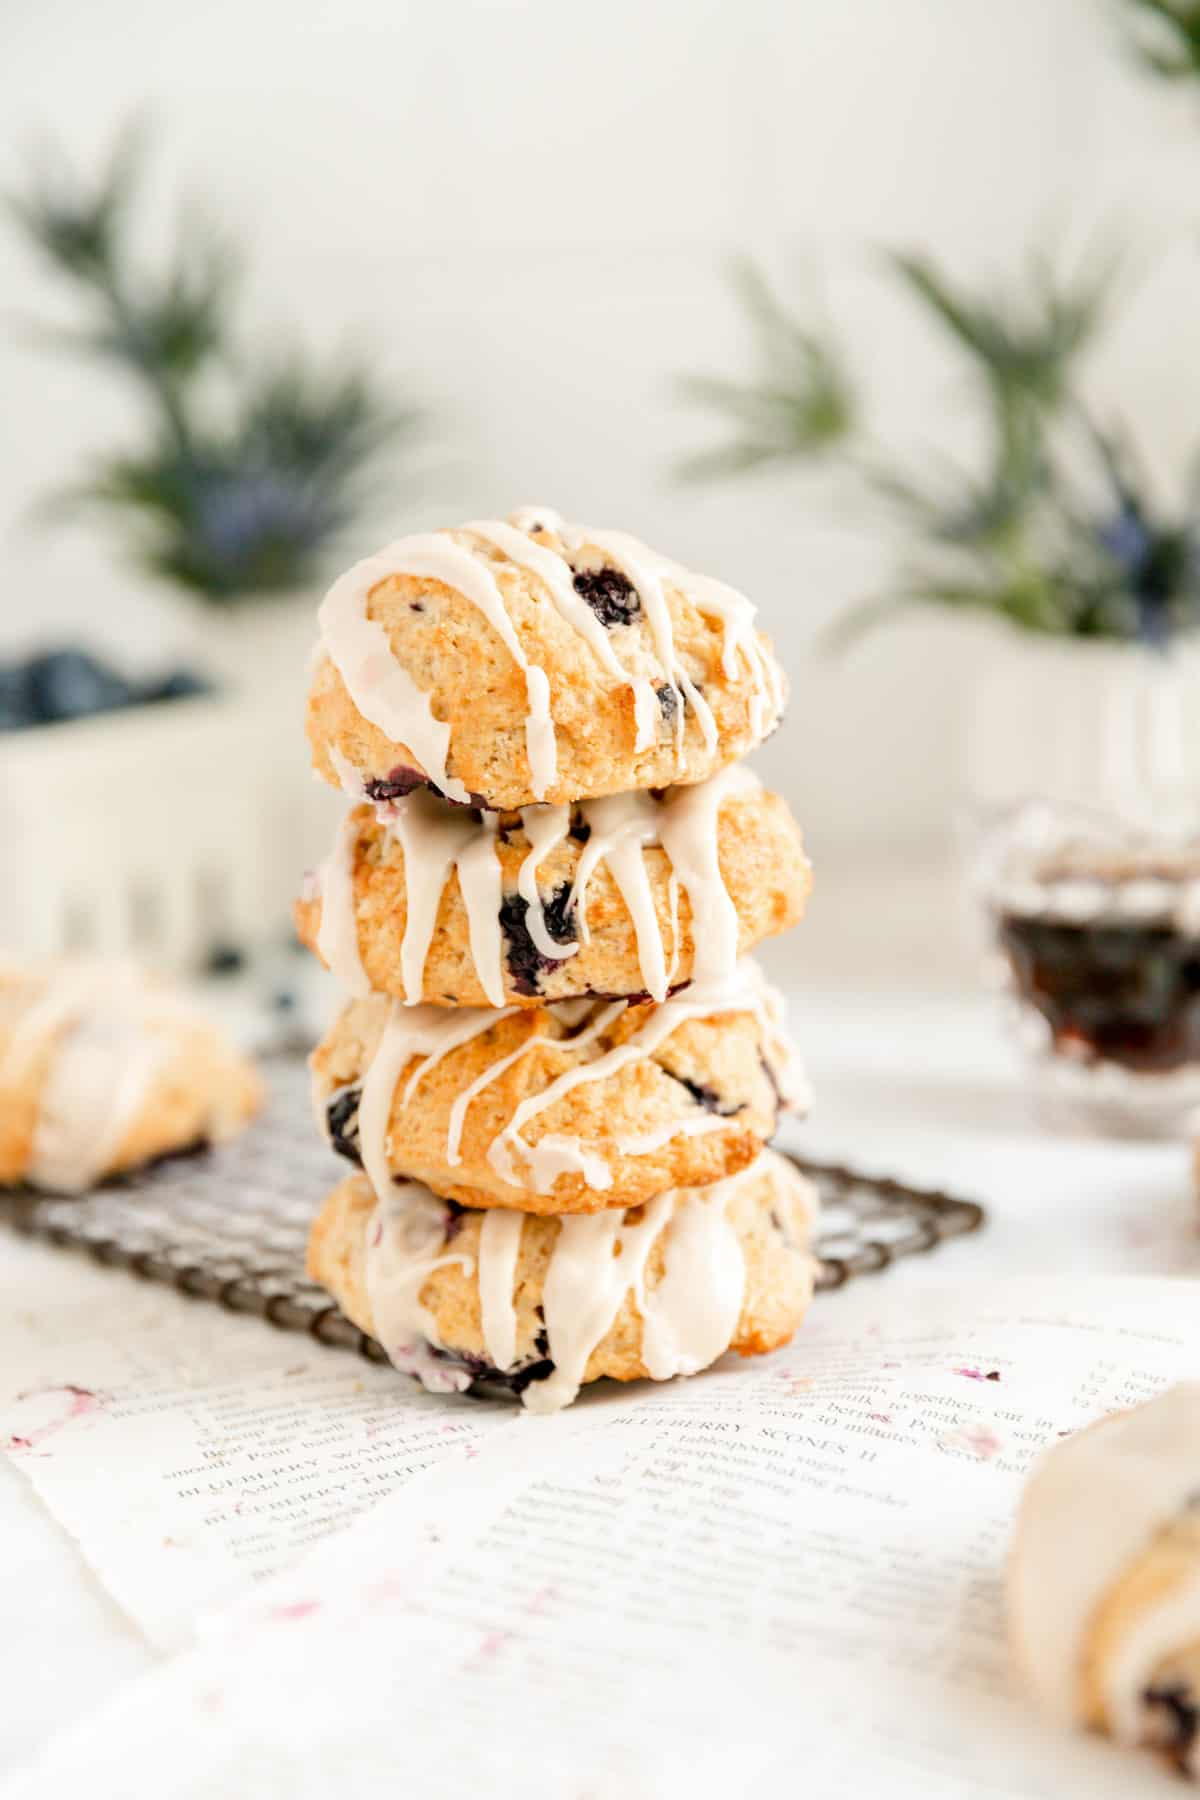 a stack of 4 blueberry scones on a dark wire rack with flowers and syrup pitcher